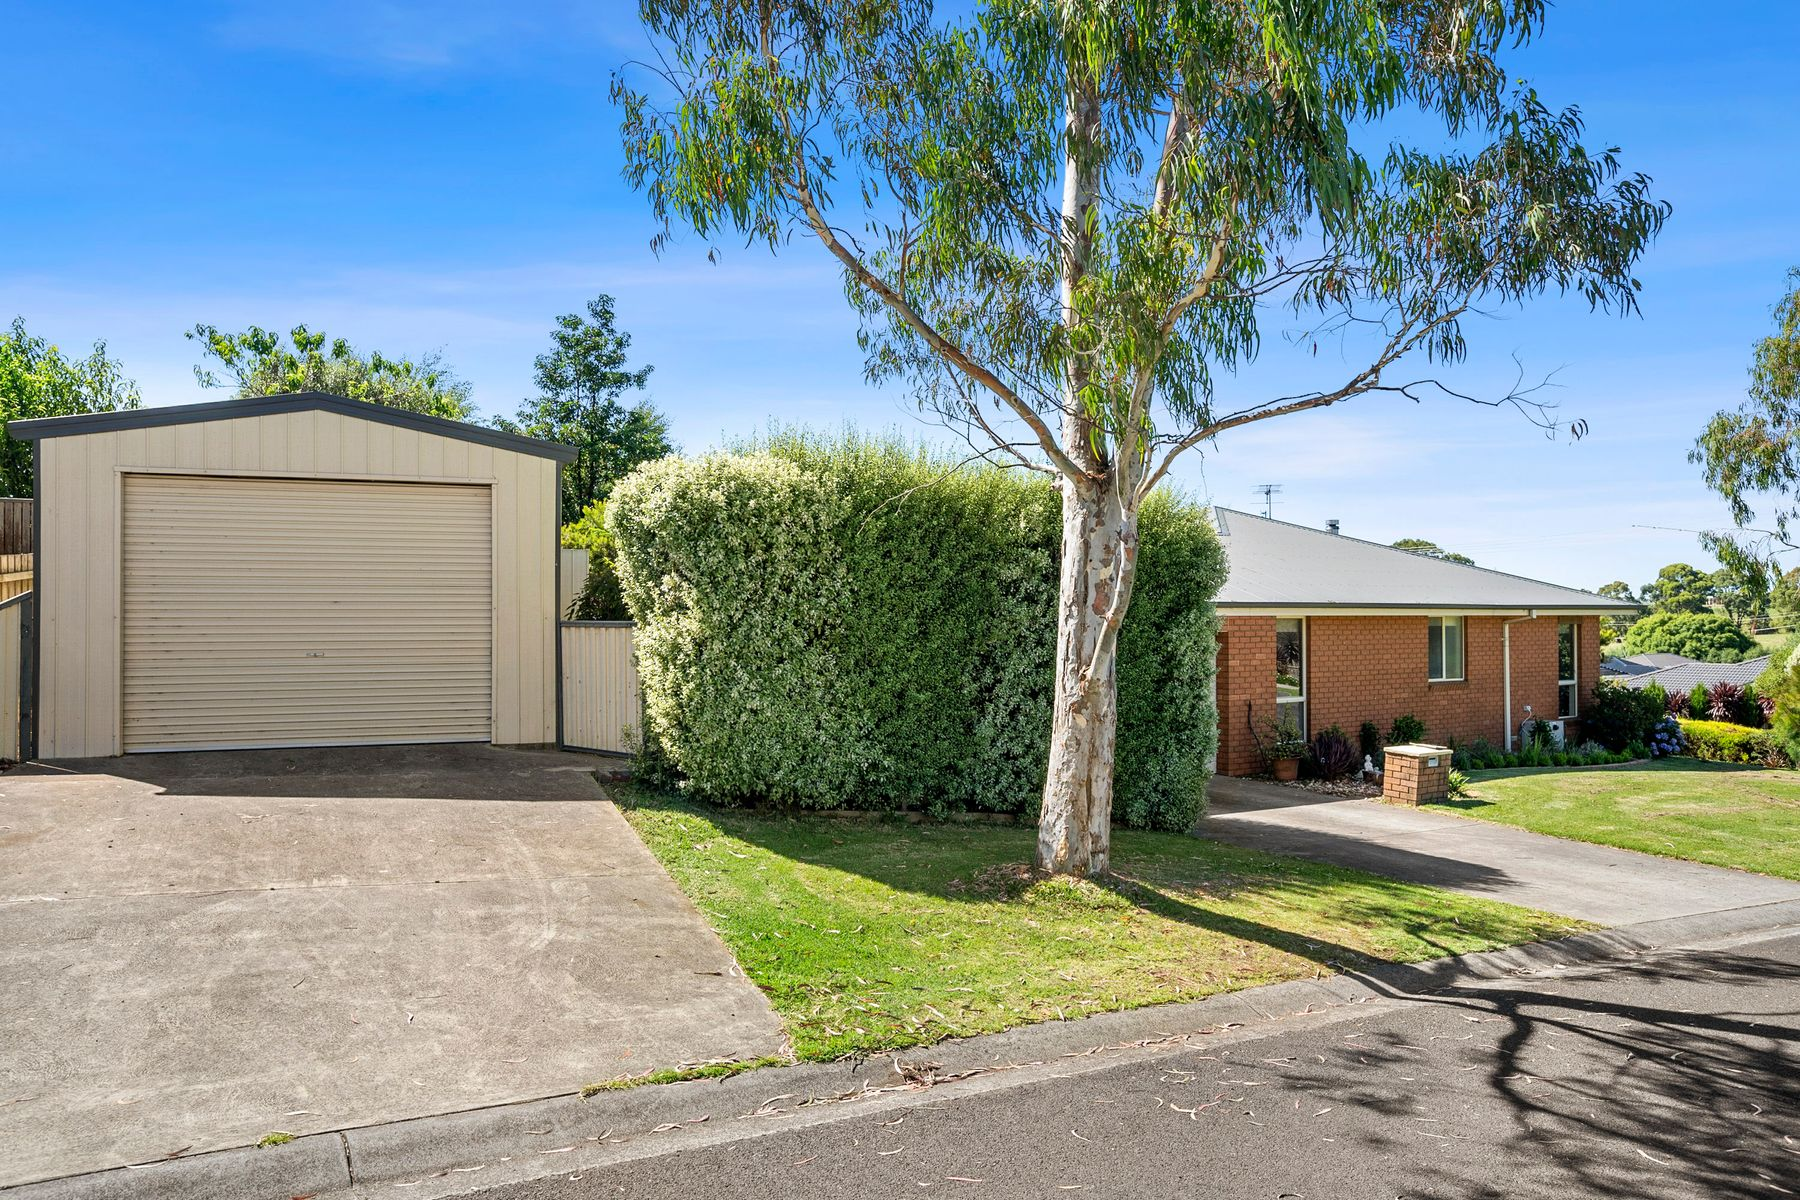 7. Dowel Court, Korumburra, VIC 3950